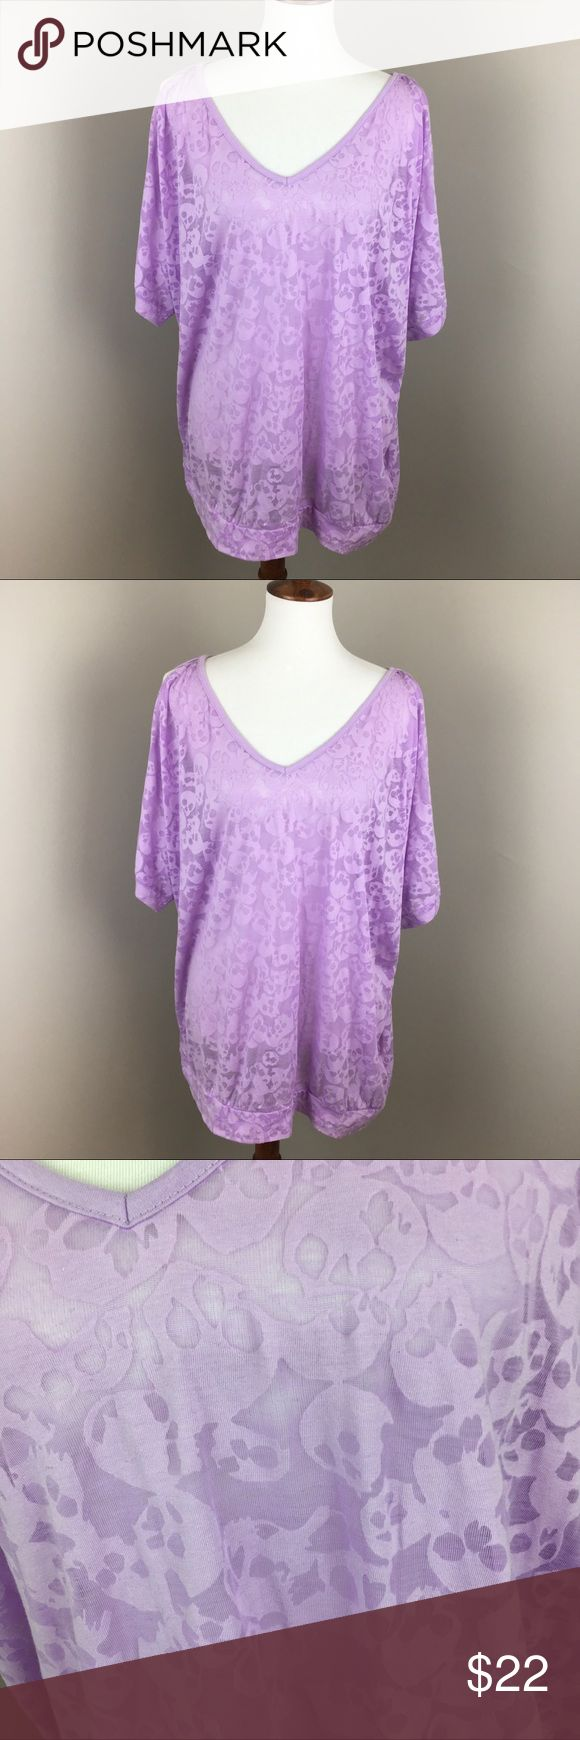 "Torrid Sheer Skull Top Size 3 Purple Women's Torrid Sheer Top with sculls. Size 3 (plus size). Color purple. Measurements- Bust 64"" and Length 29"". Has split sleeves. Top is in great condition. torrid Tops Tees - Short Sleeve"